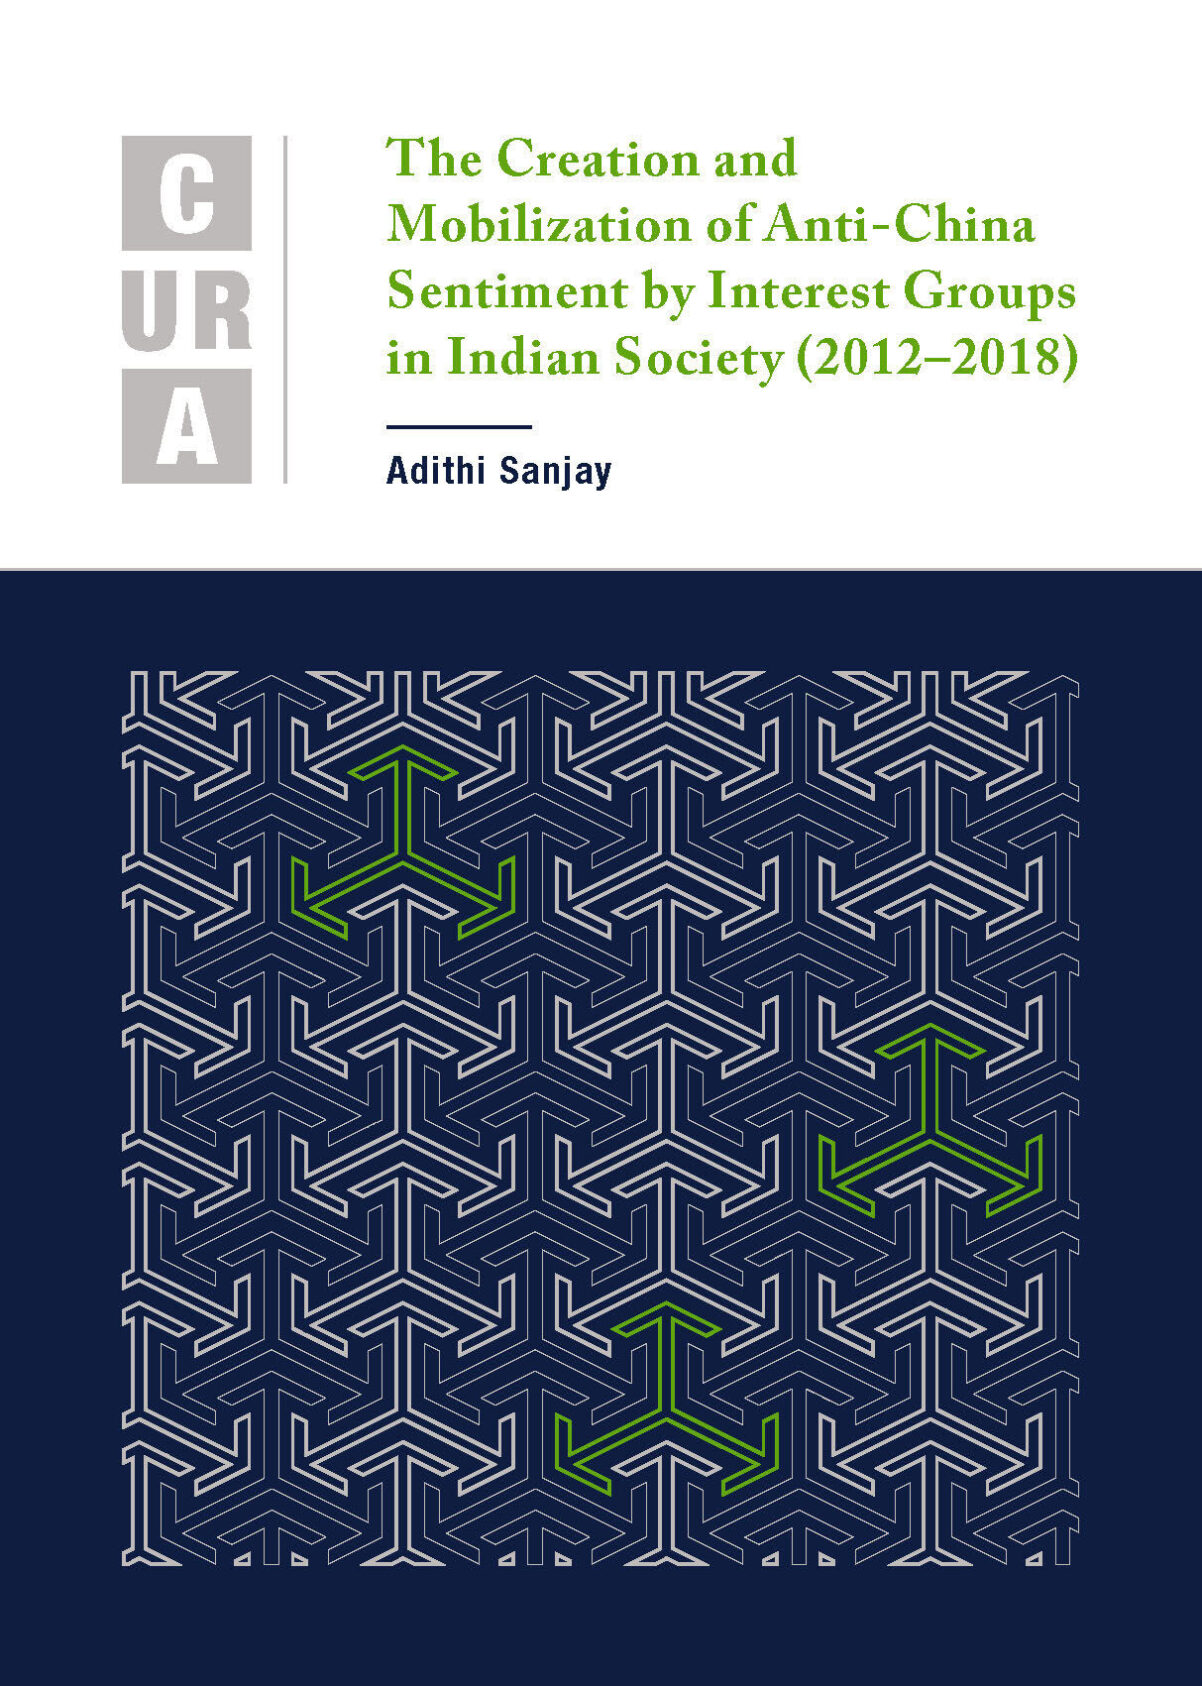 The Creation and Mobilization of Anti-China Sentiment by Interest Groups in Indian Society (2012–2018)